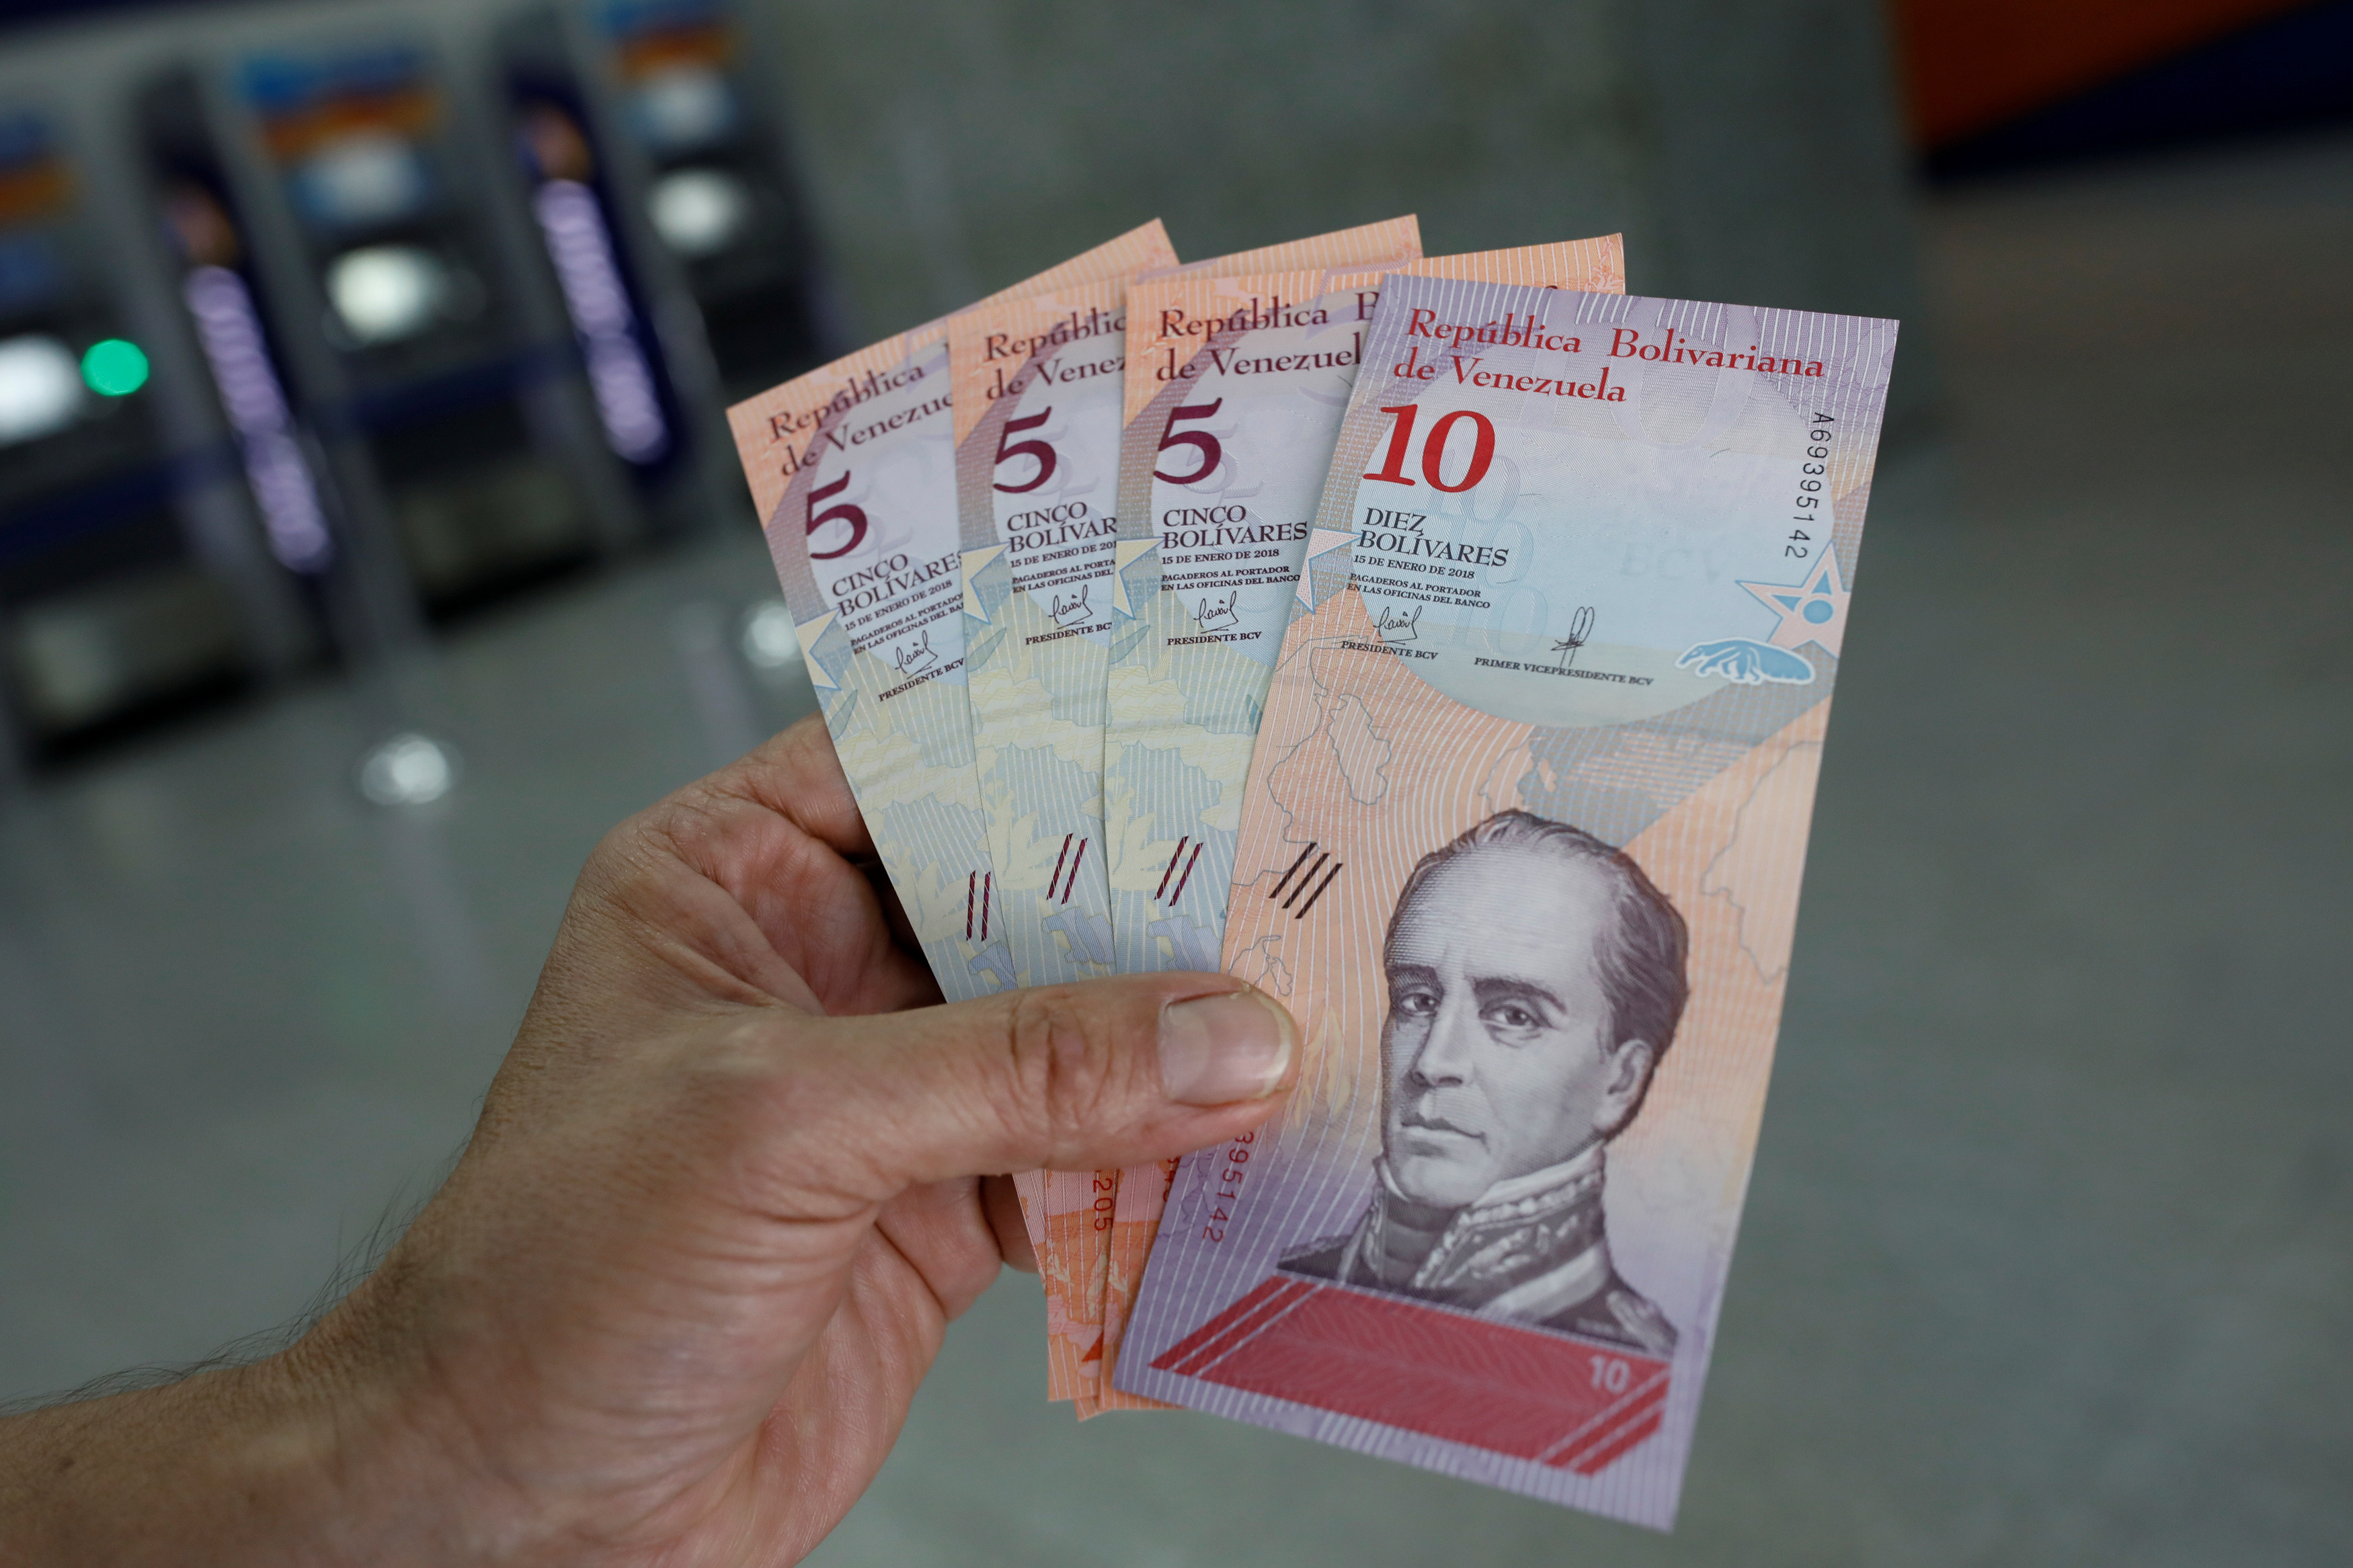 A man shows the new five and ten Bolivar Soberano (Sovereign Bolivar) bills, after he withdrew them from an automated teller machine (ATM) at a Mercantil bank branch in Caracas, Venezuela August 20, 2018. REUTERS/Carlos Garcia Rawlins - RC181067B810